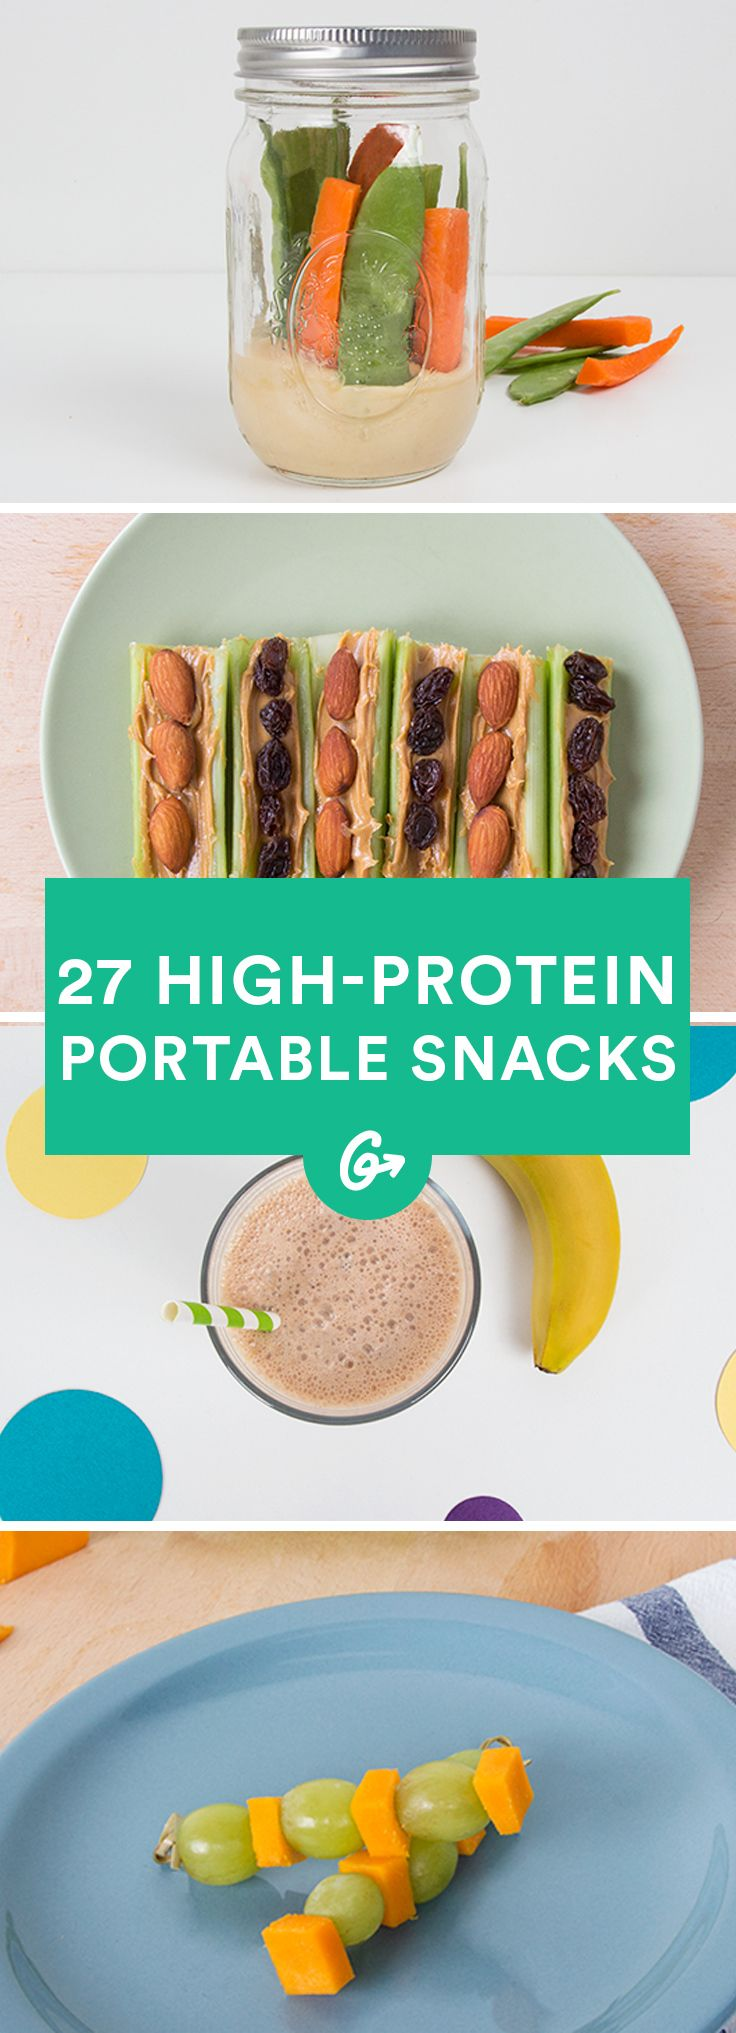 27 Portable Snacks That Have More Protein Than A Hard